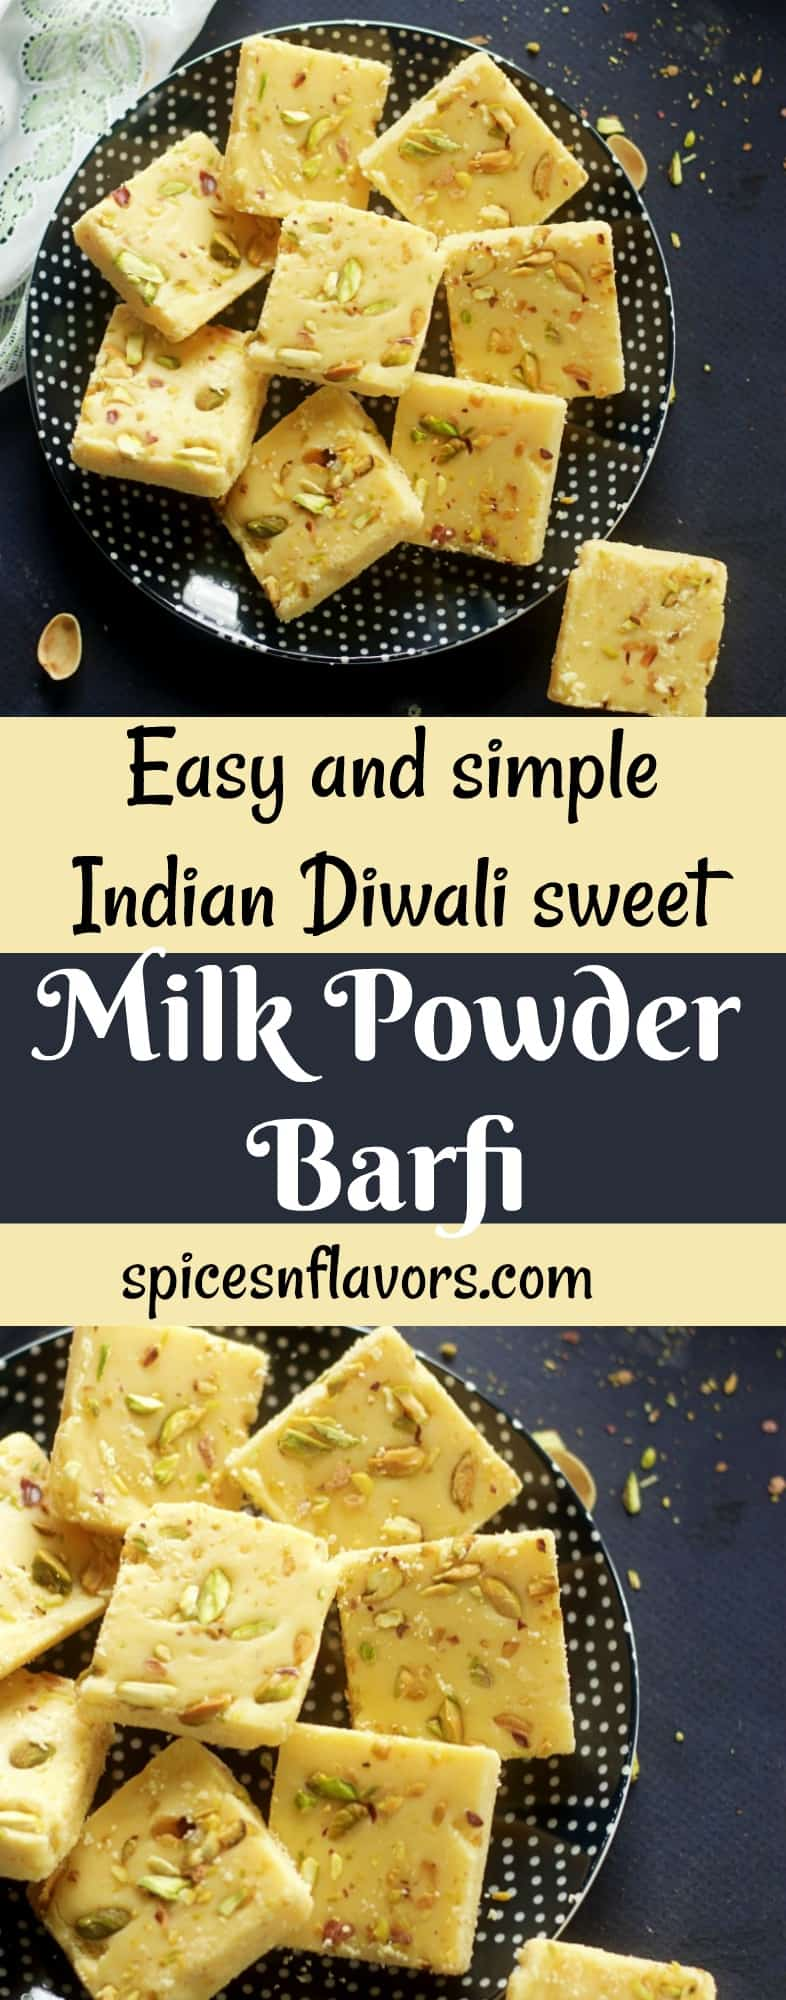 milk powder burfi milk powder barfi #diwali special #indian sweet diwali special indian sweet quick and easy indian sweet indian festival recipe indian sweets diwali recipes easy diwali sweets what to make on diwali beginners recipe 15 mins indian sweet